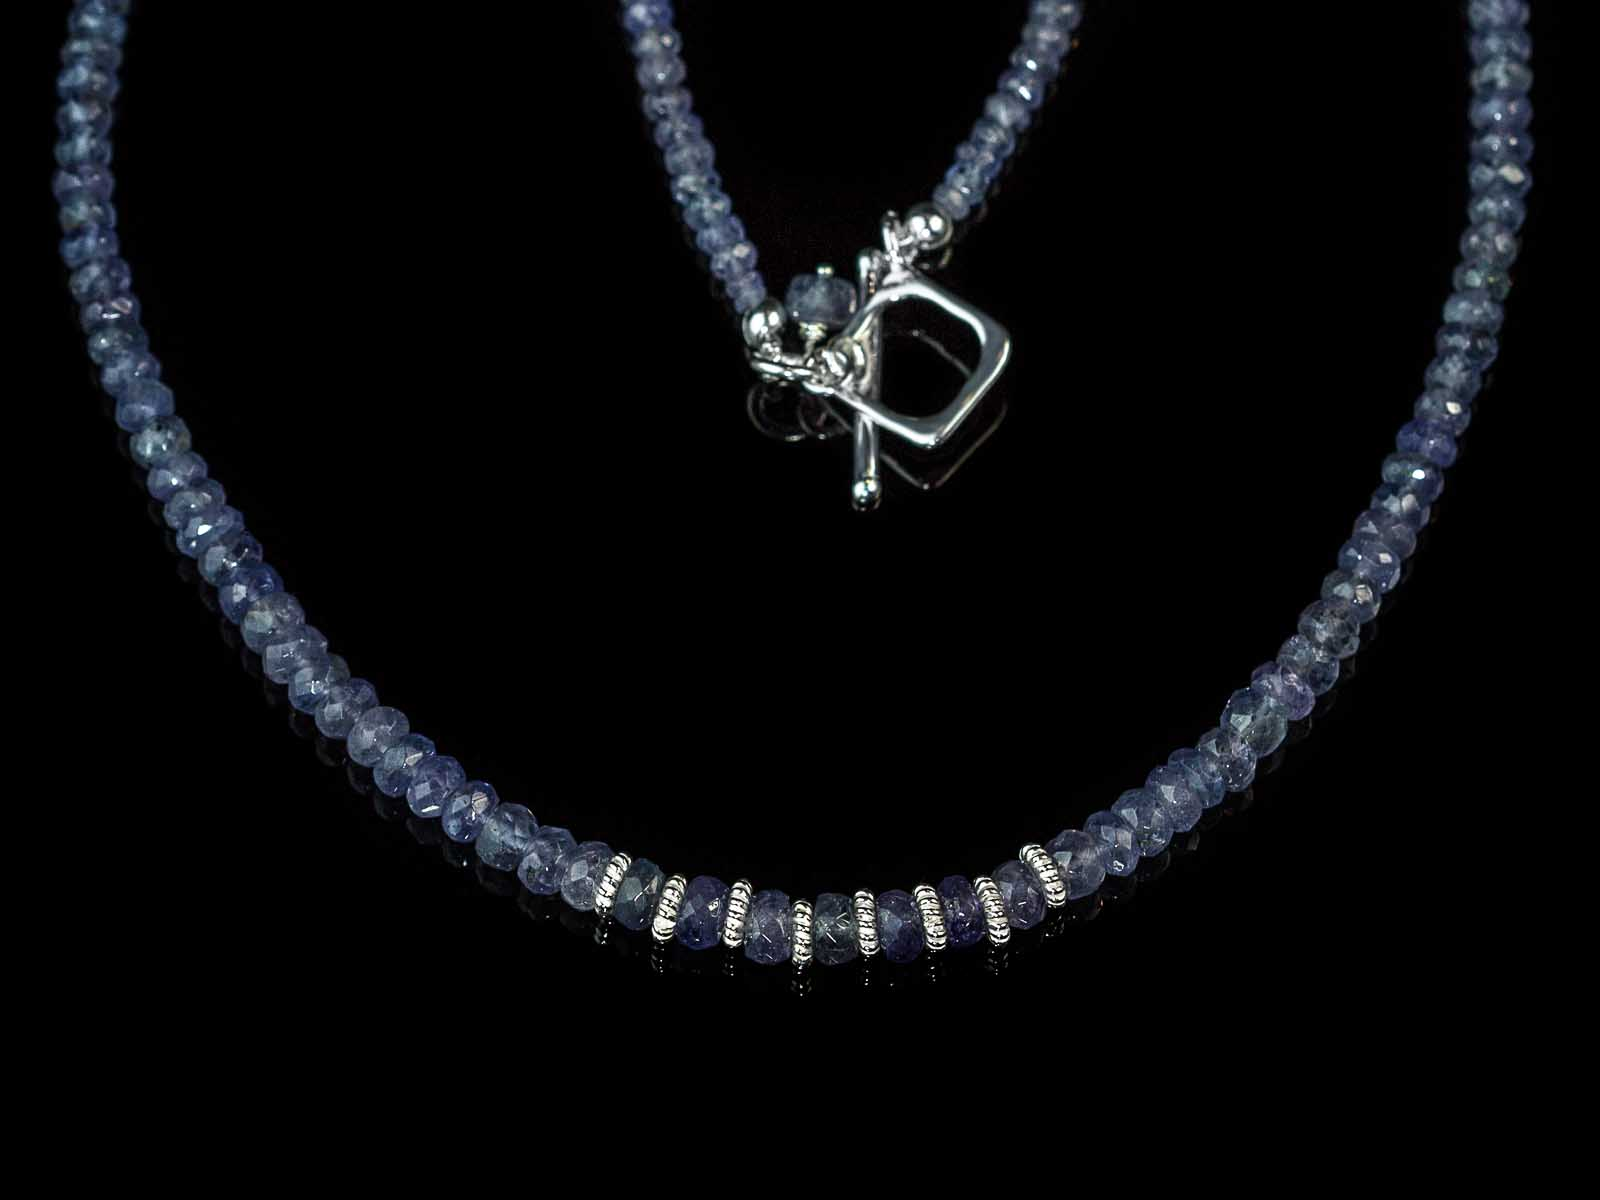 Blue Tanzanite Necklace With Sterling Silver Works